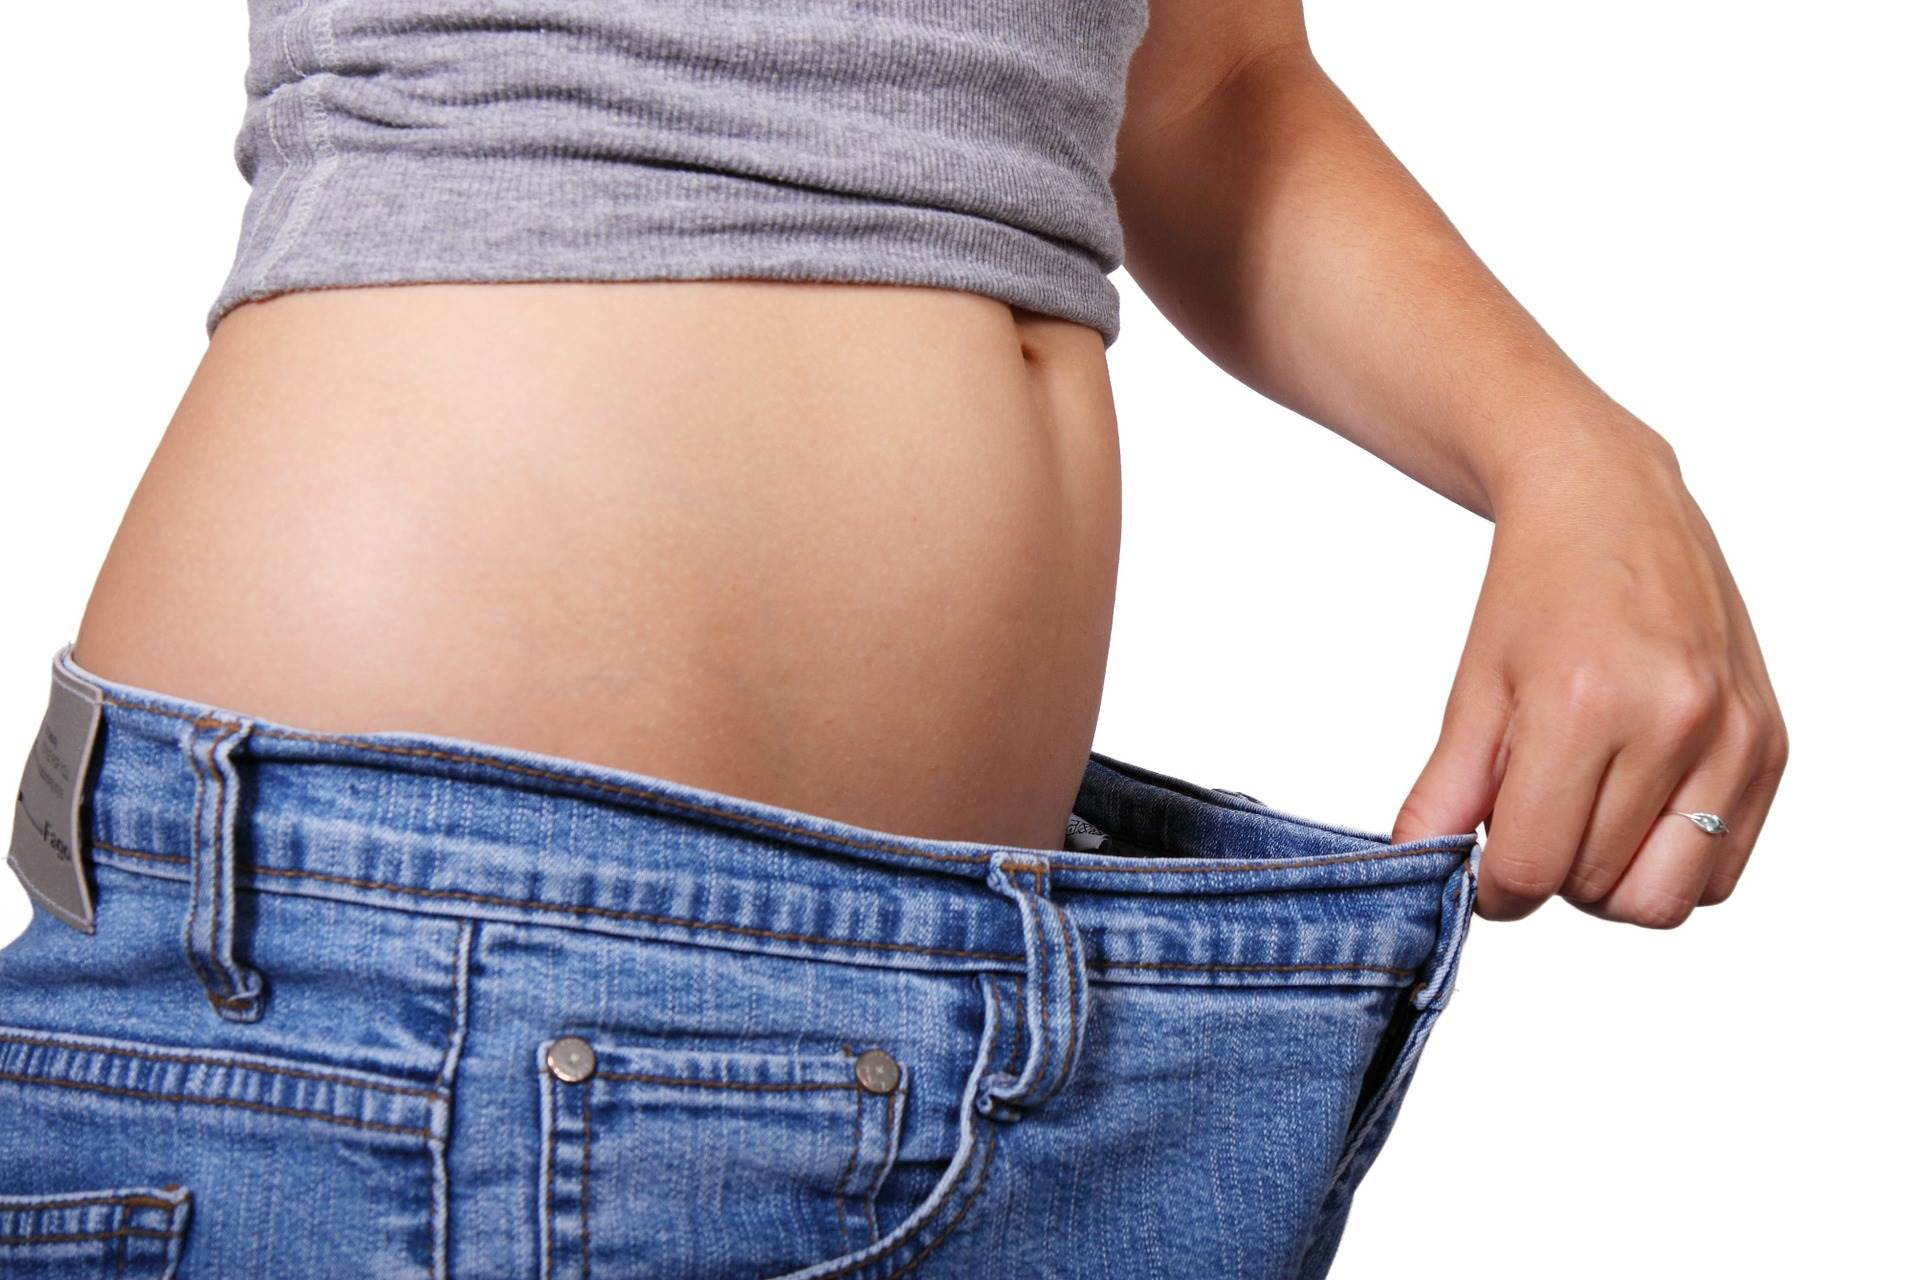 Nuts can boost weight loss